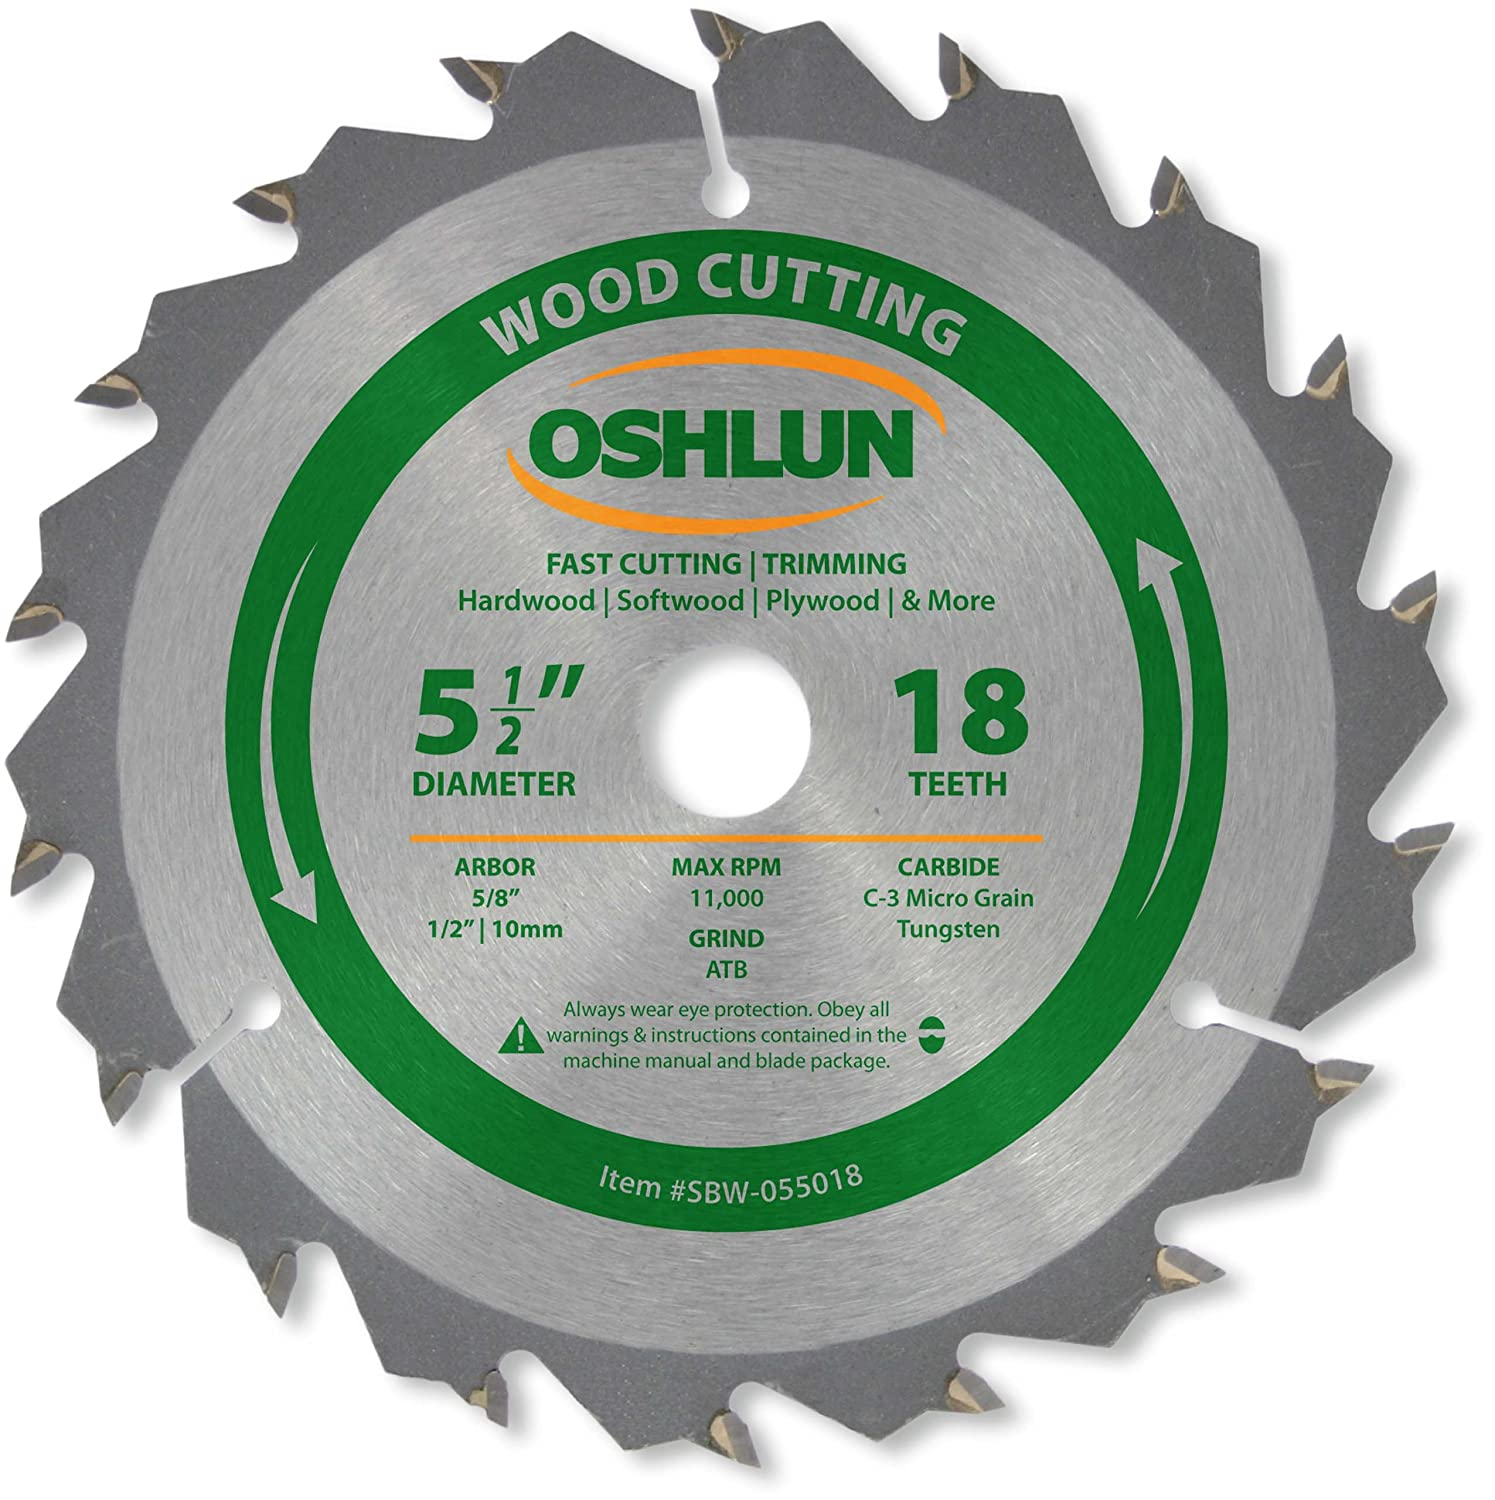 Oshlun sbw 055024 5 12 inch 24 tooth atb general purpose and oshlun sbw 055024 5 12 inch 24 tooth atb general purpose and trimming saw blade with 58 inch arbor 12 inch and 10mm bushings circular saw blades greentooth Images